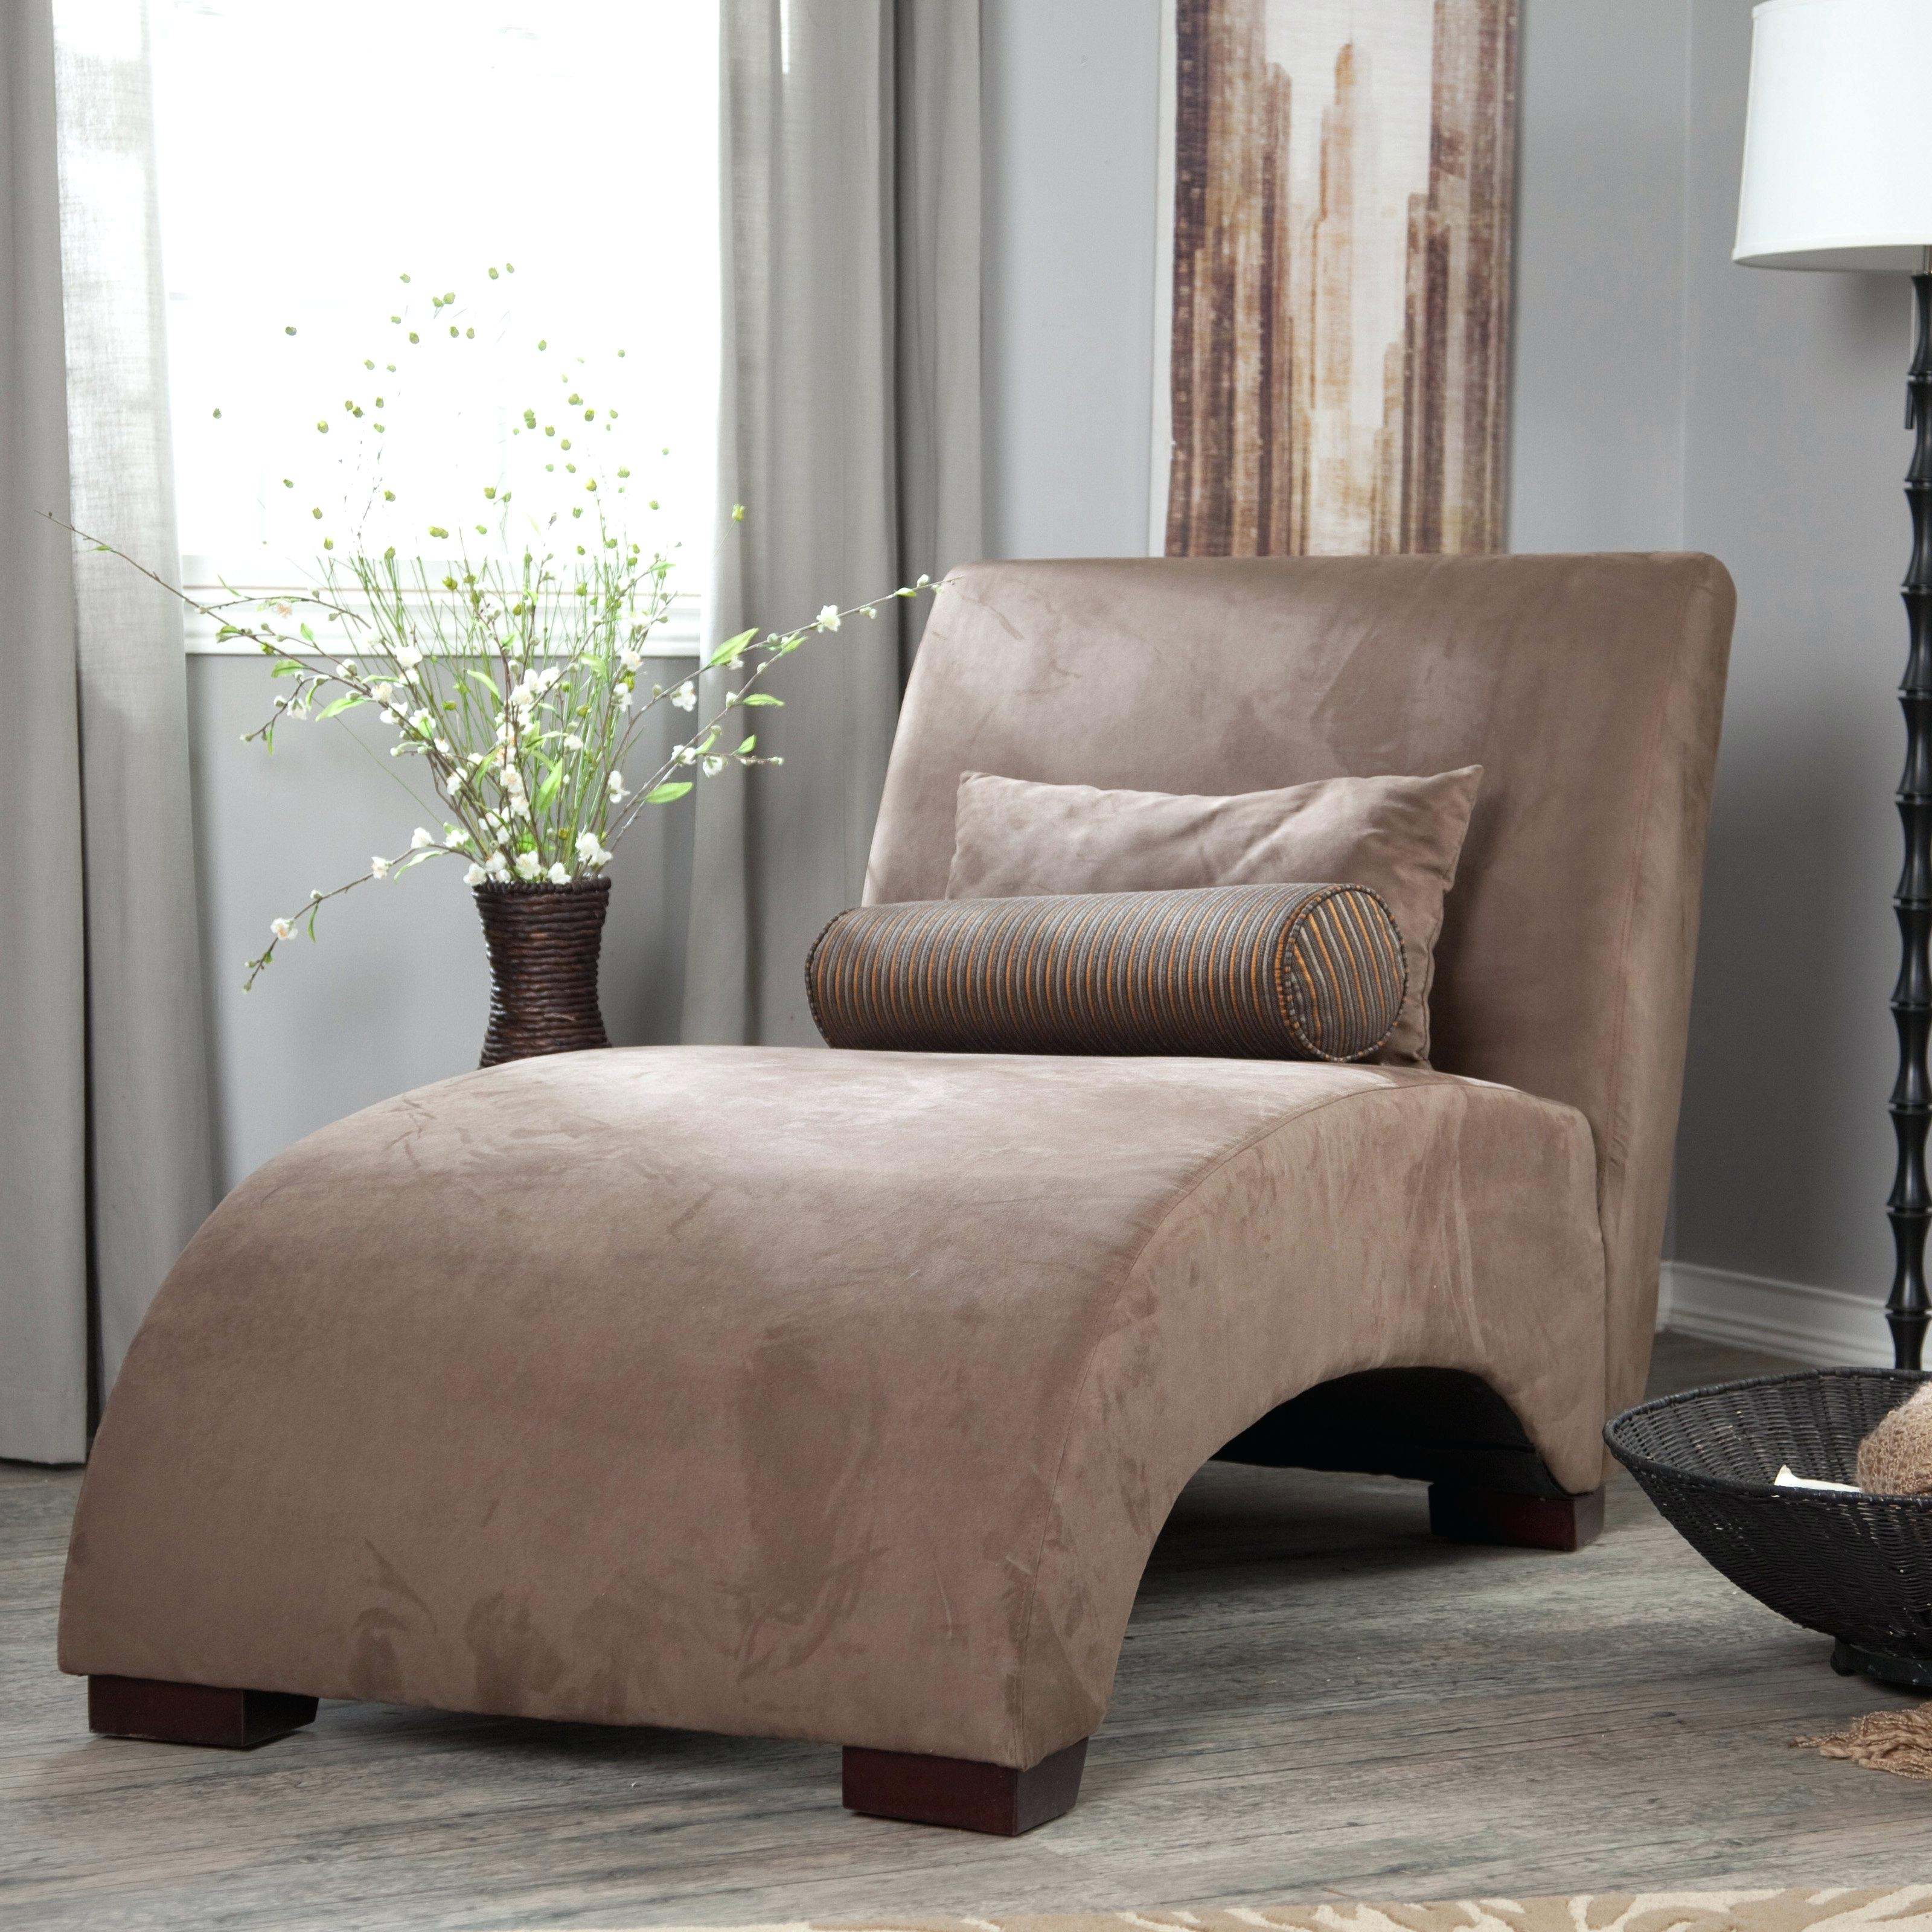 Widely Used Armless Lounge Chair Slipcovers • Lounge Chairs Ideas With Regard To Chaise Lounge Chairs With Arms Slipcover (View 3 of 15)